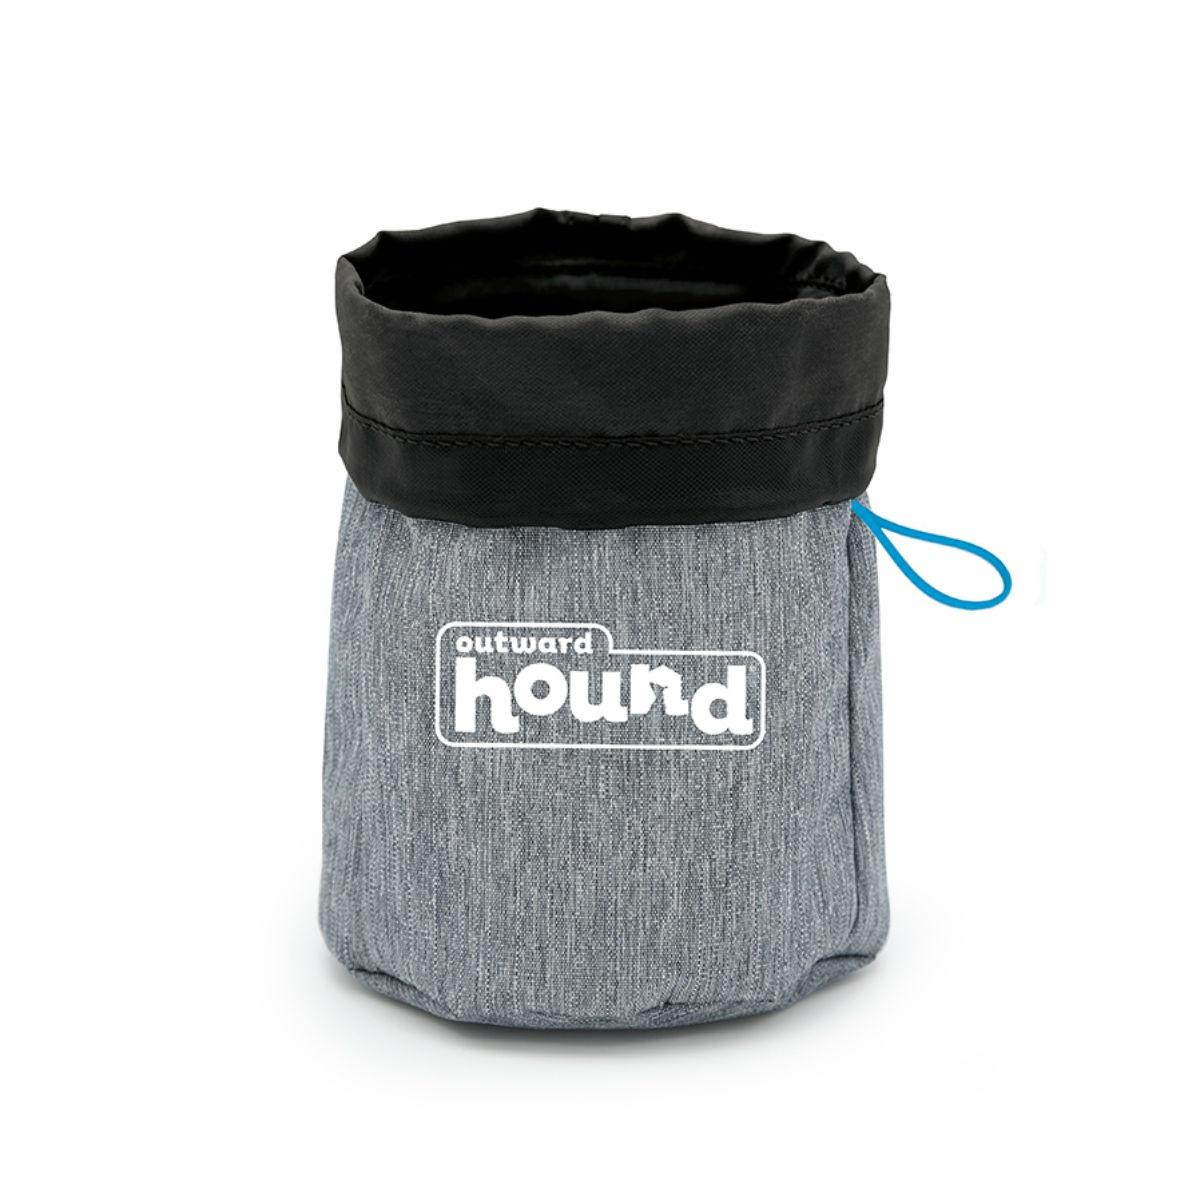 Outward Hound Treat Tote Bag - Gray and Black